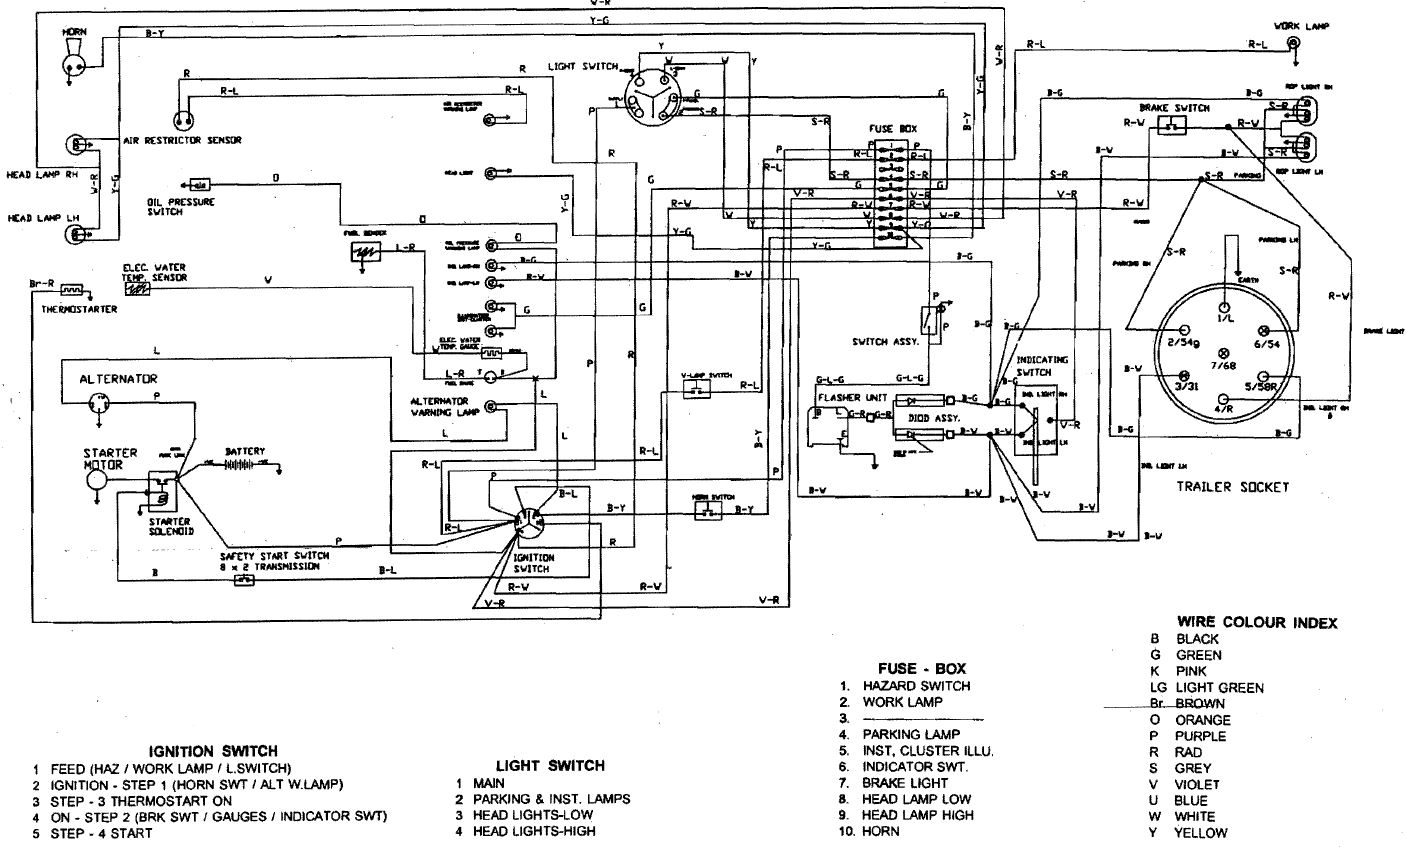 [GJFJ_338]  Ignition switch wiring diagram | John Deere 1010 Wiring Schematic |  | TractorByNet